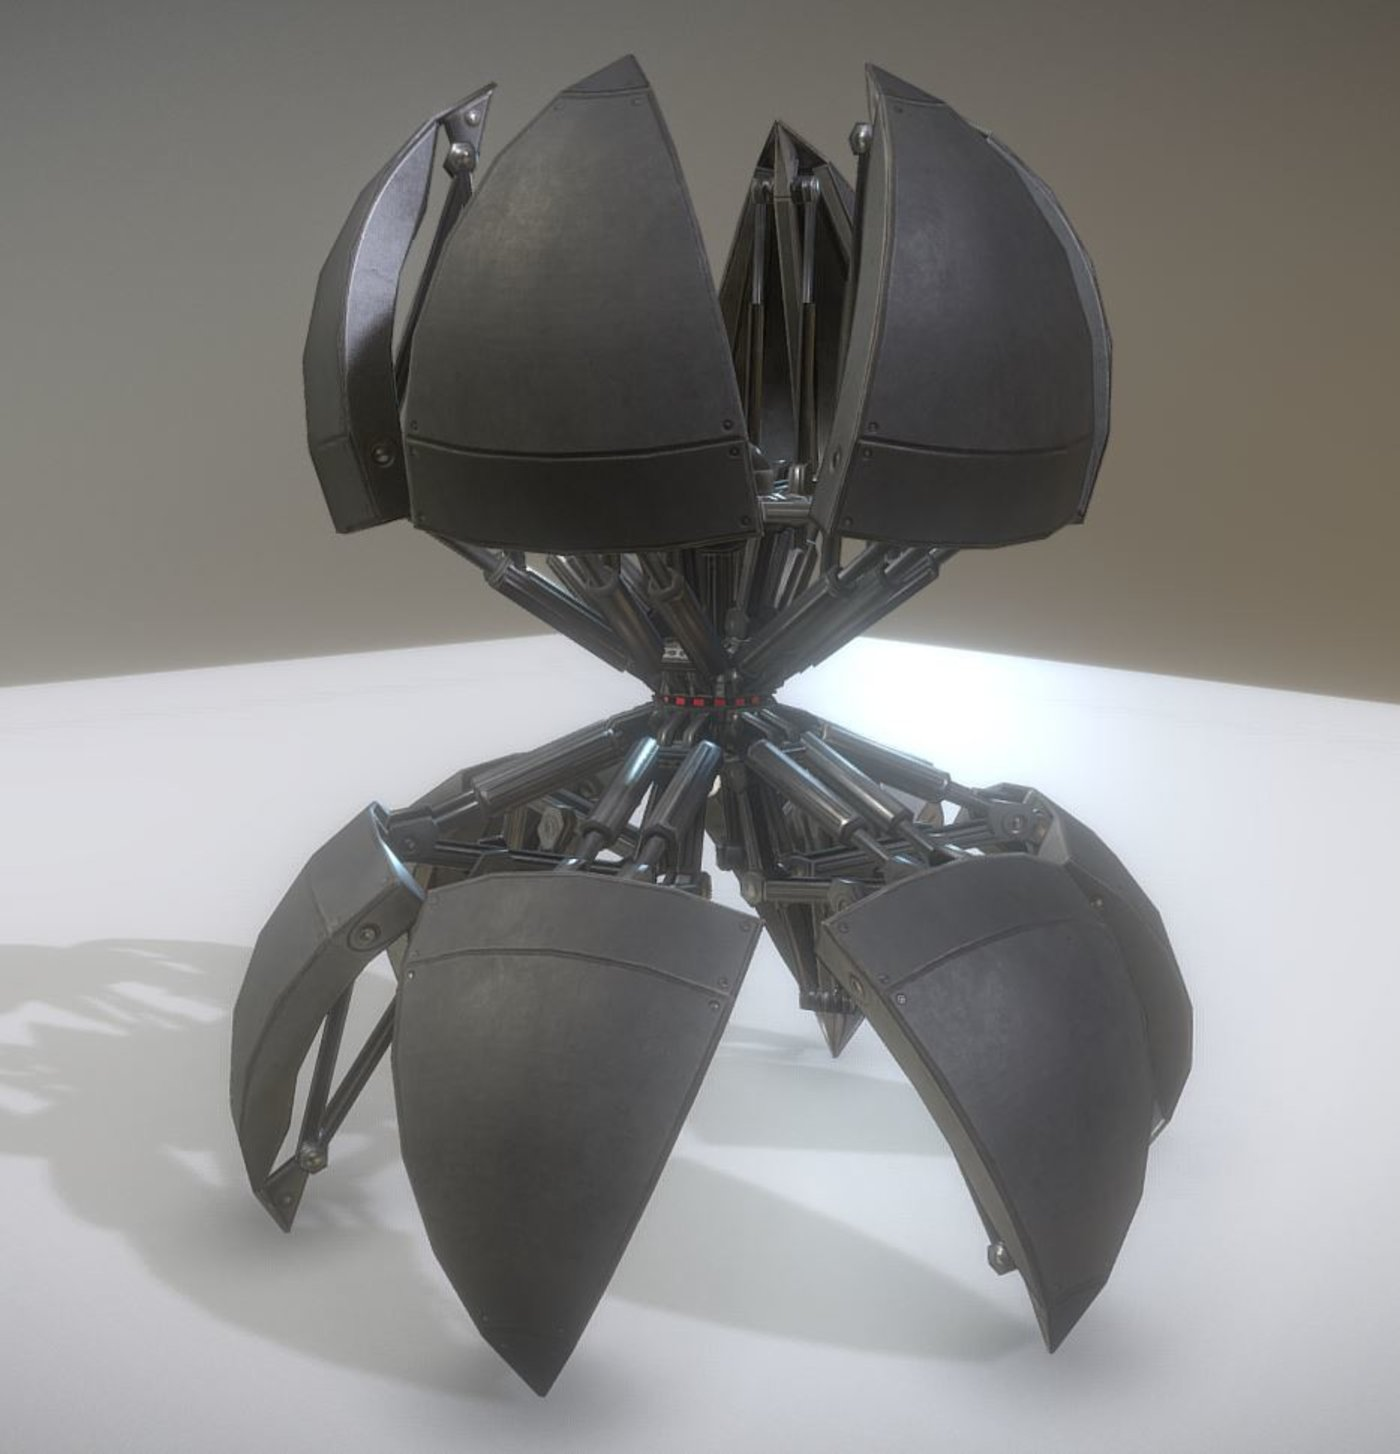 Sphere-Bot with hydraulics